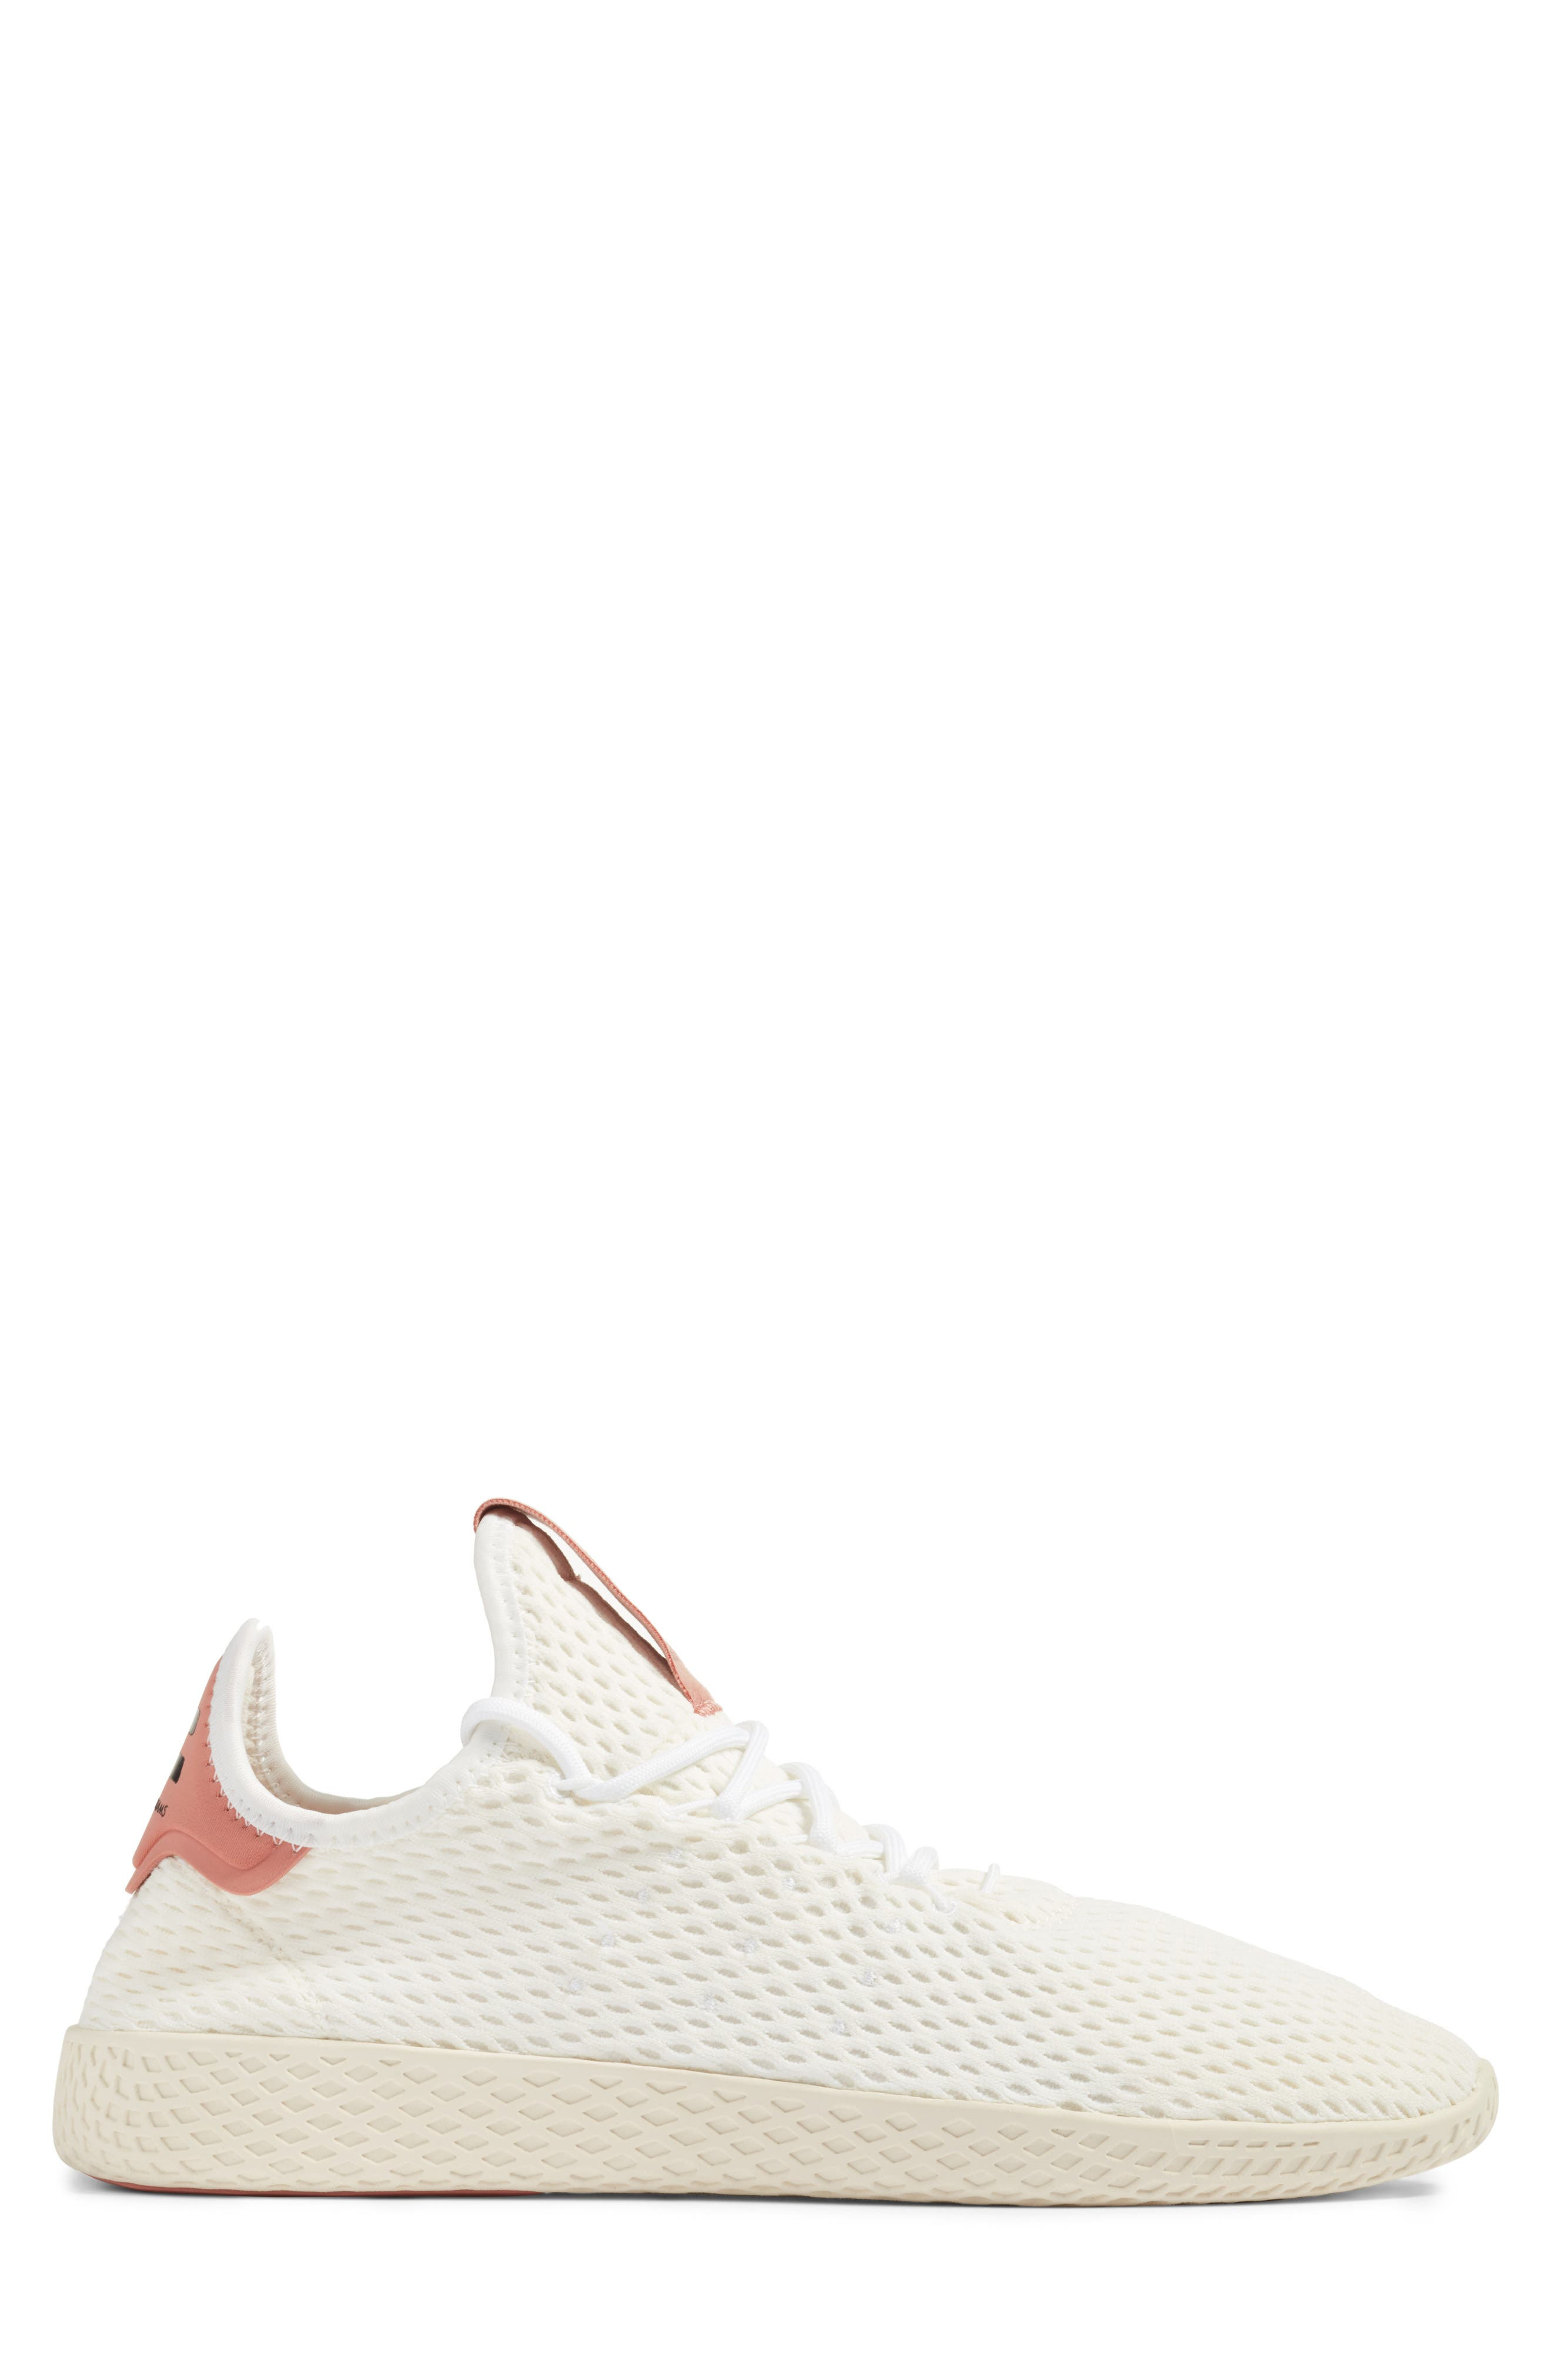 Pharrell Williams Tennis Hu Sneaker,                             Alternate thumbnail 3, color,                             White/ Pink